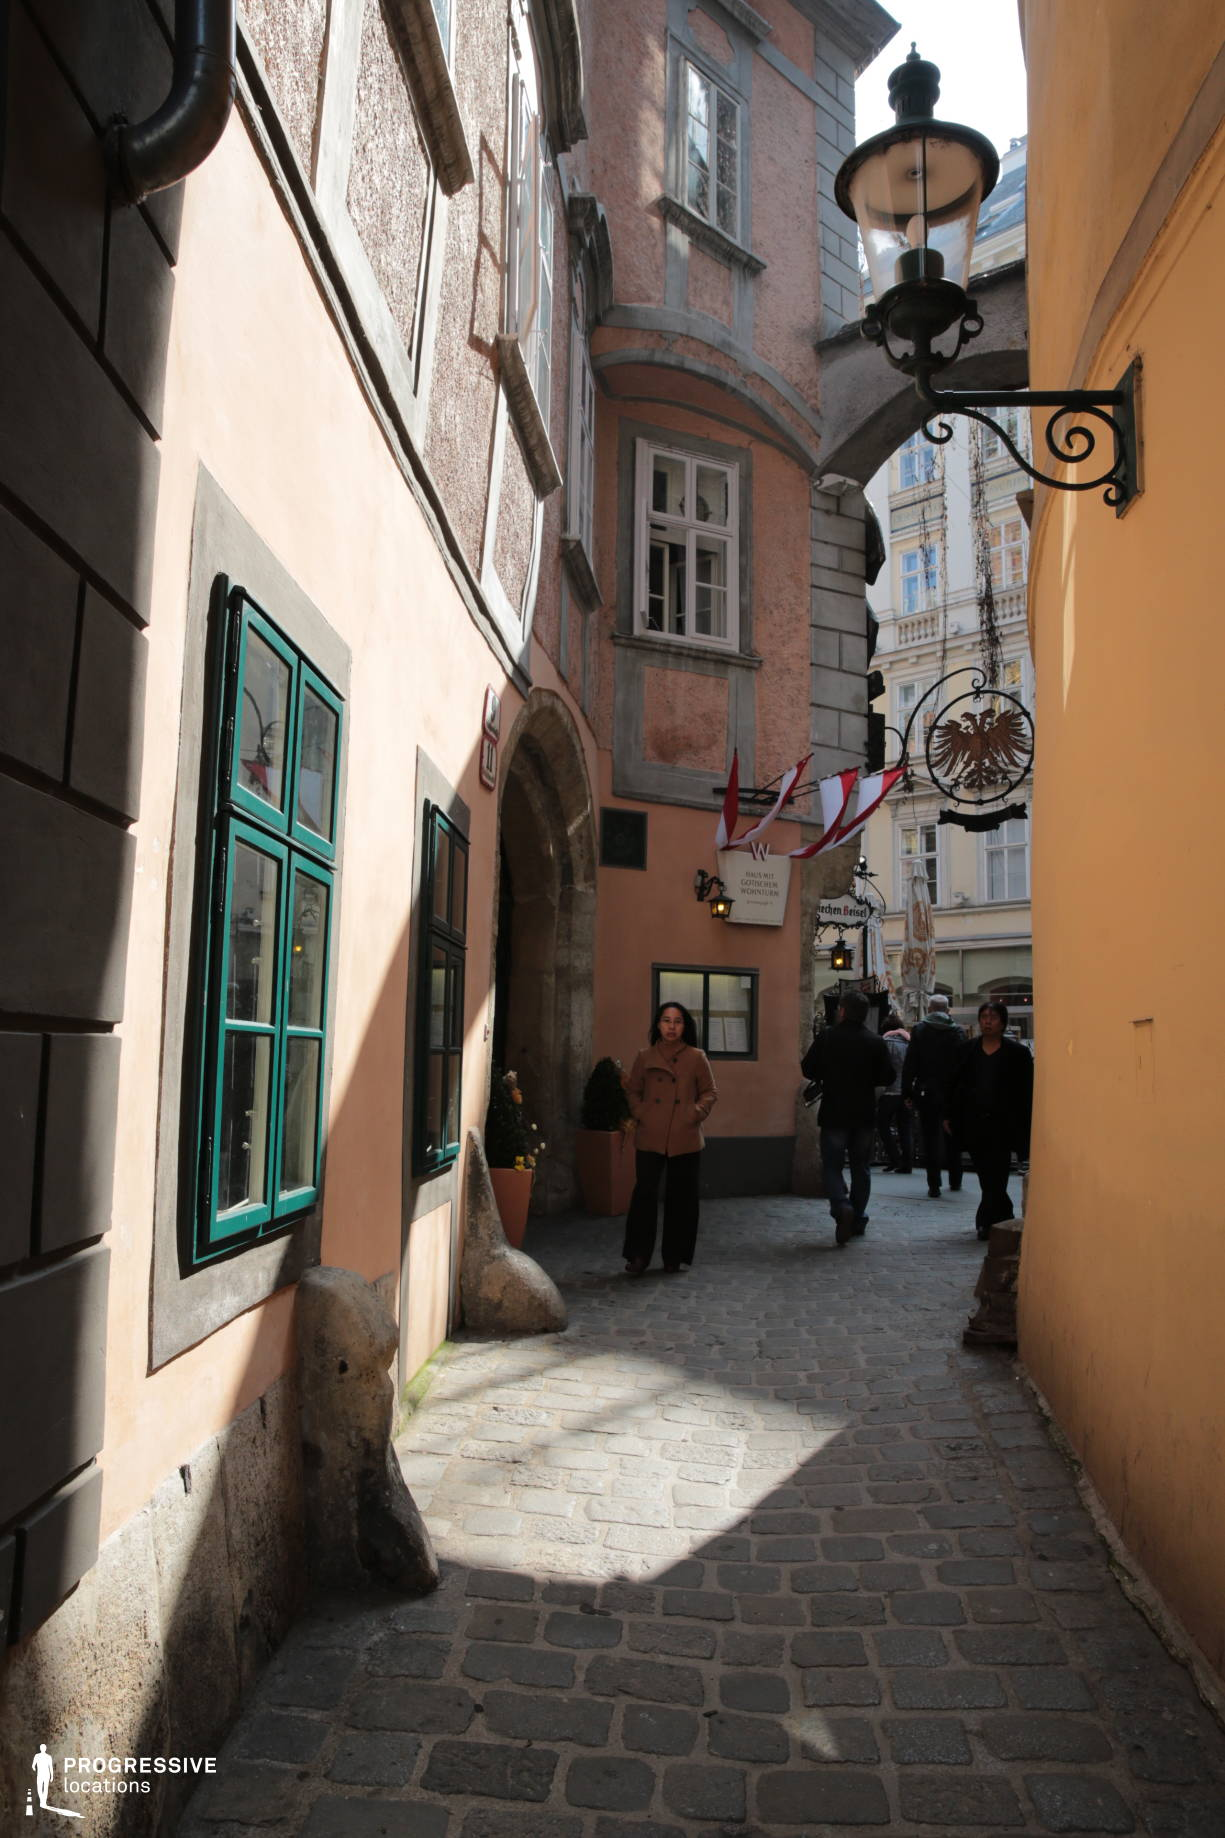 Locations in Austria: Griechengasse Alley